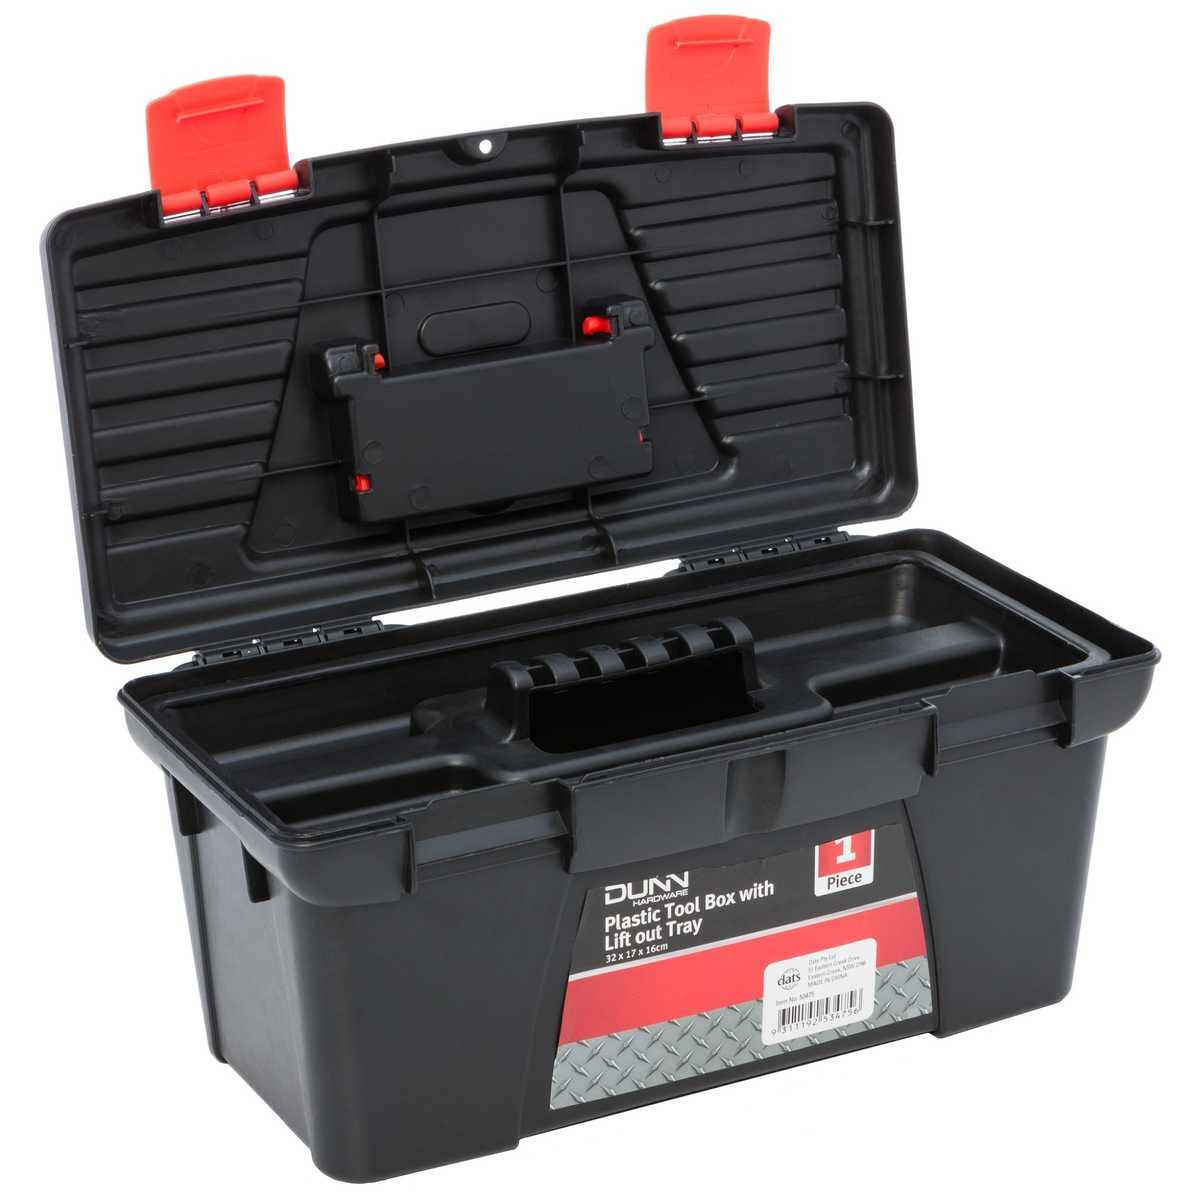 Box Plastik Dunn Plastic Tool Box With Lift Out Tray Big W